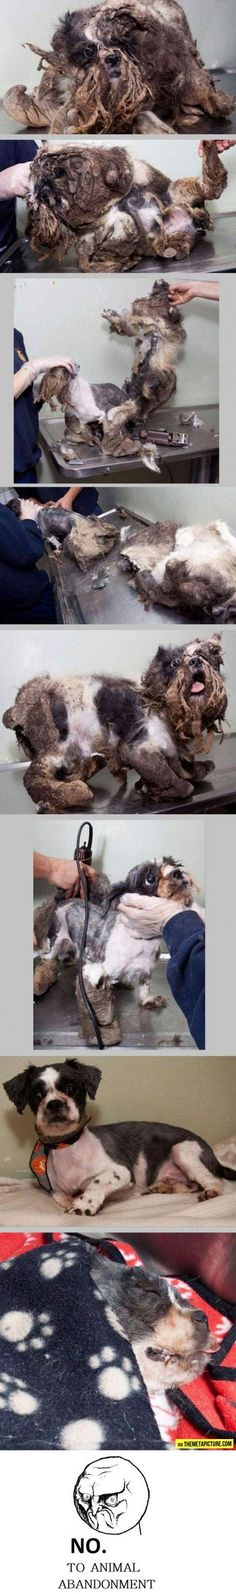 Rescued and saved…Look how scared he looks 3rd picture from the bottom :-( poor little guy